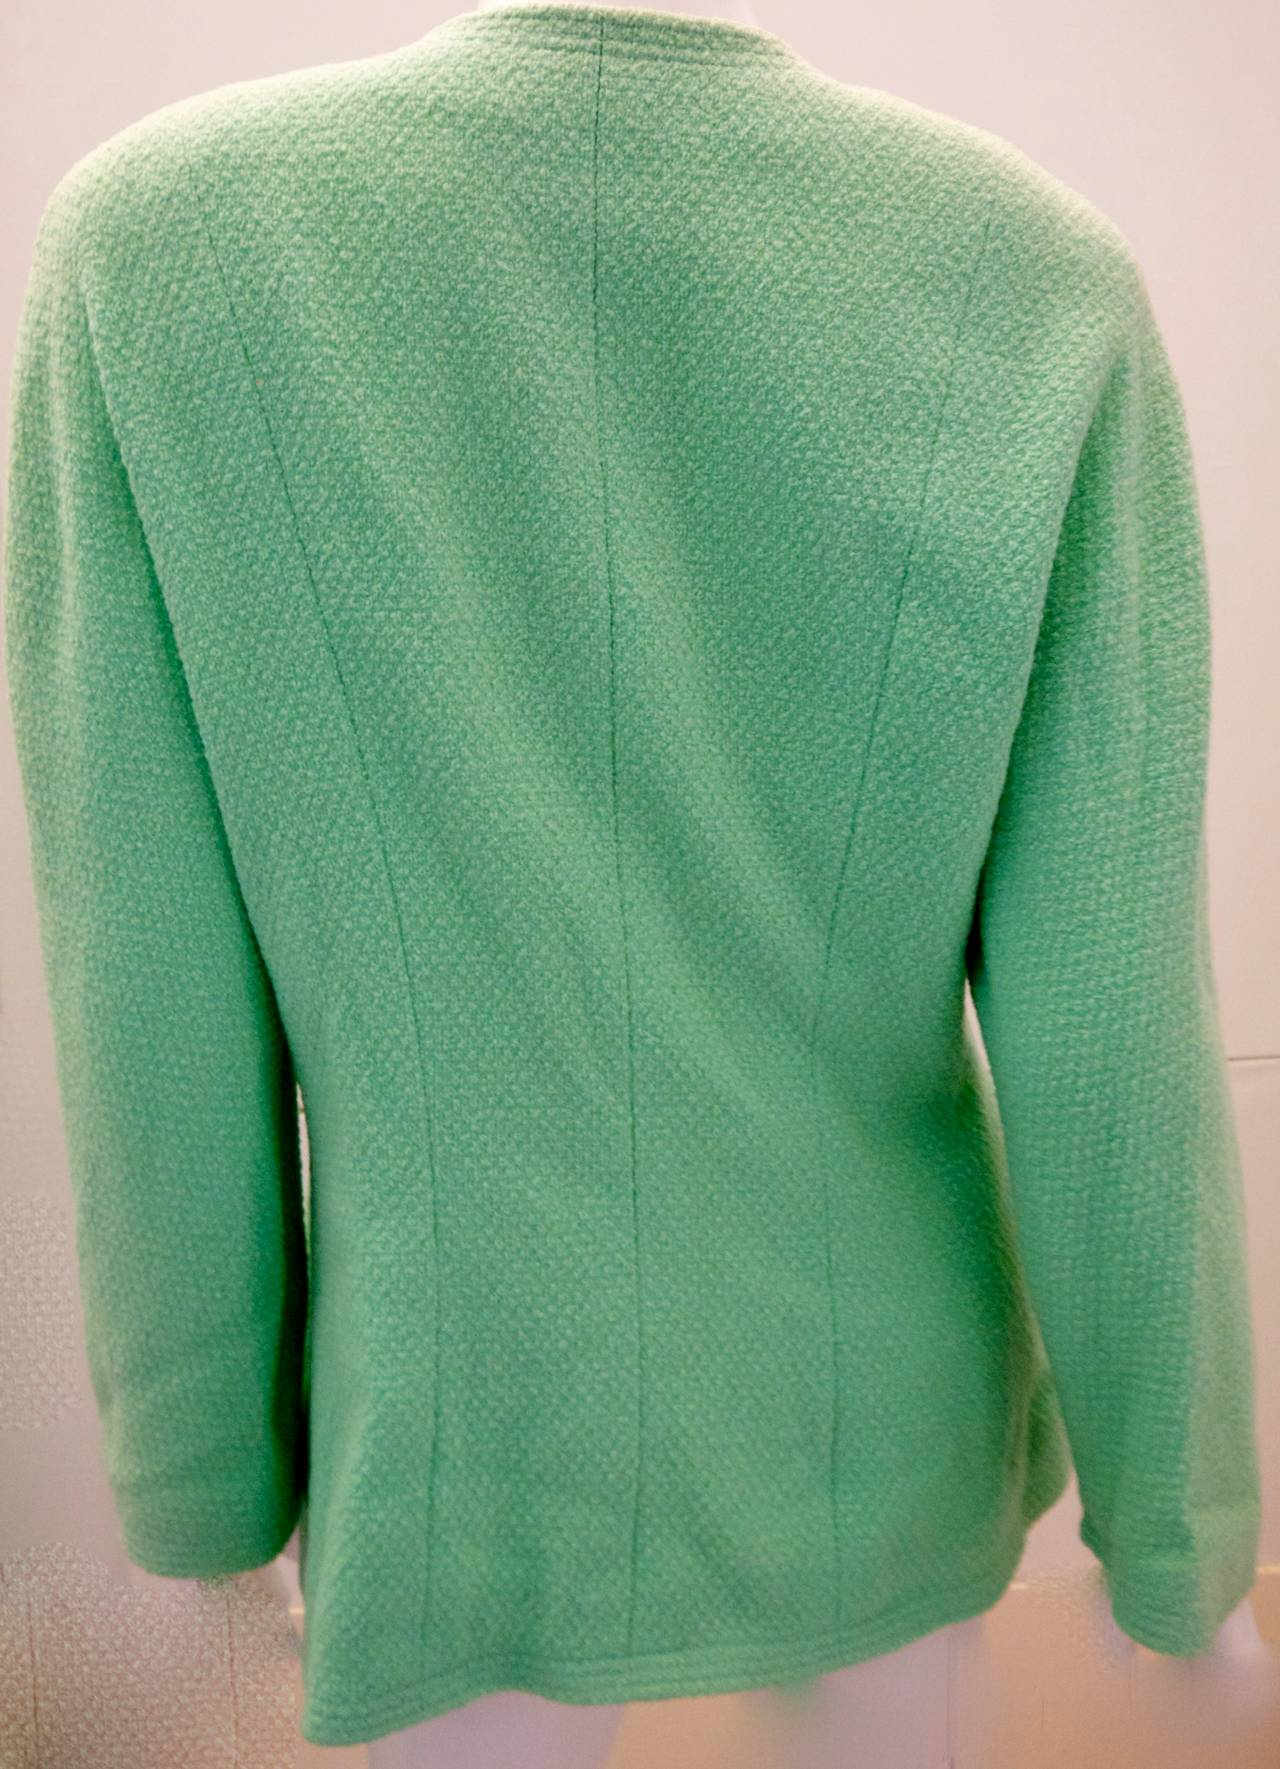 Gorgeous Chanel Boutique sea foam green jacket from the early 1980's. The jacket is in near mint condition and is a size 42. The jacket has dark charcoal gray buttons along the front and 4 large pockets along the front of the jacket. The jacket is